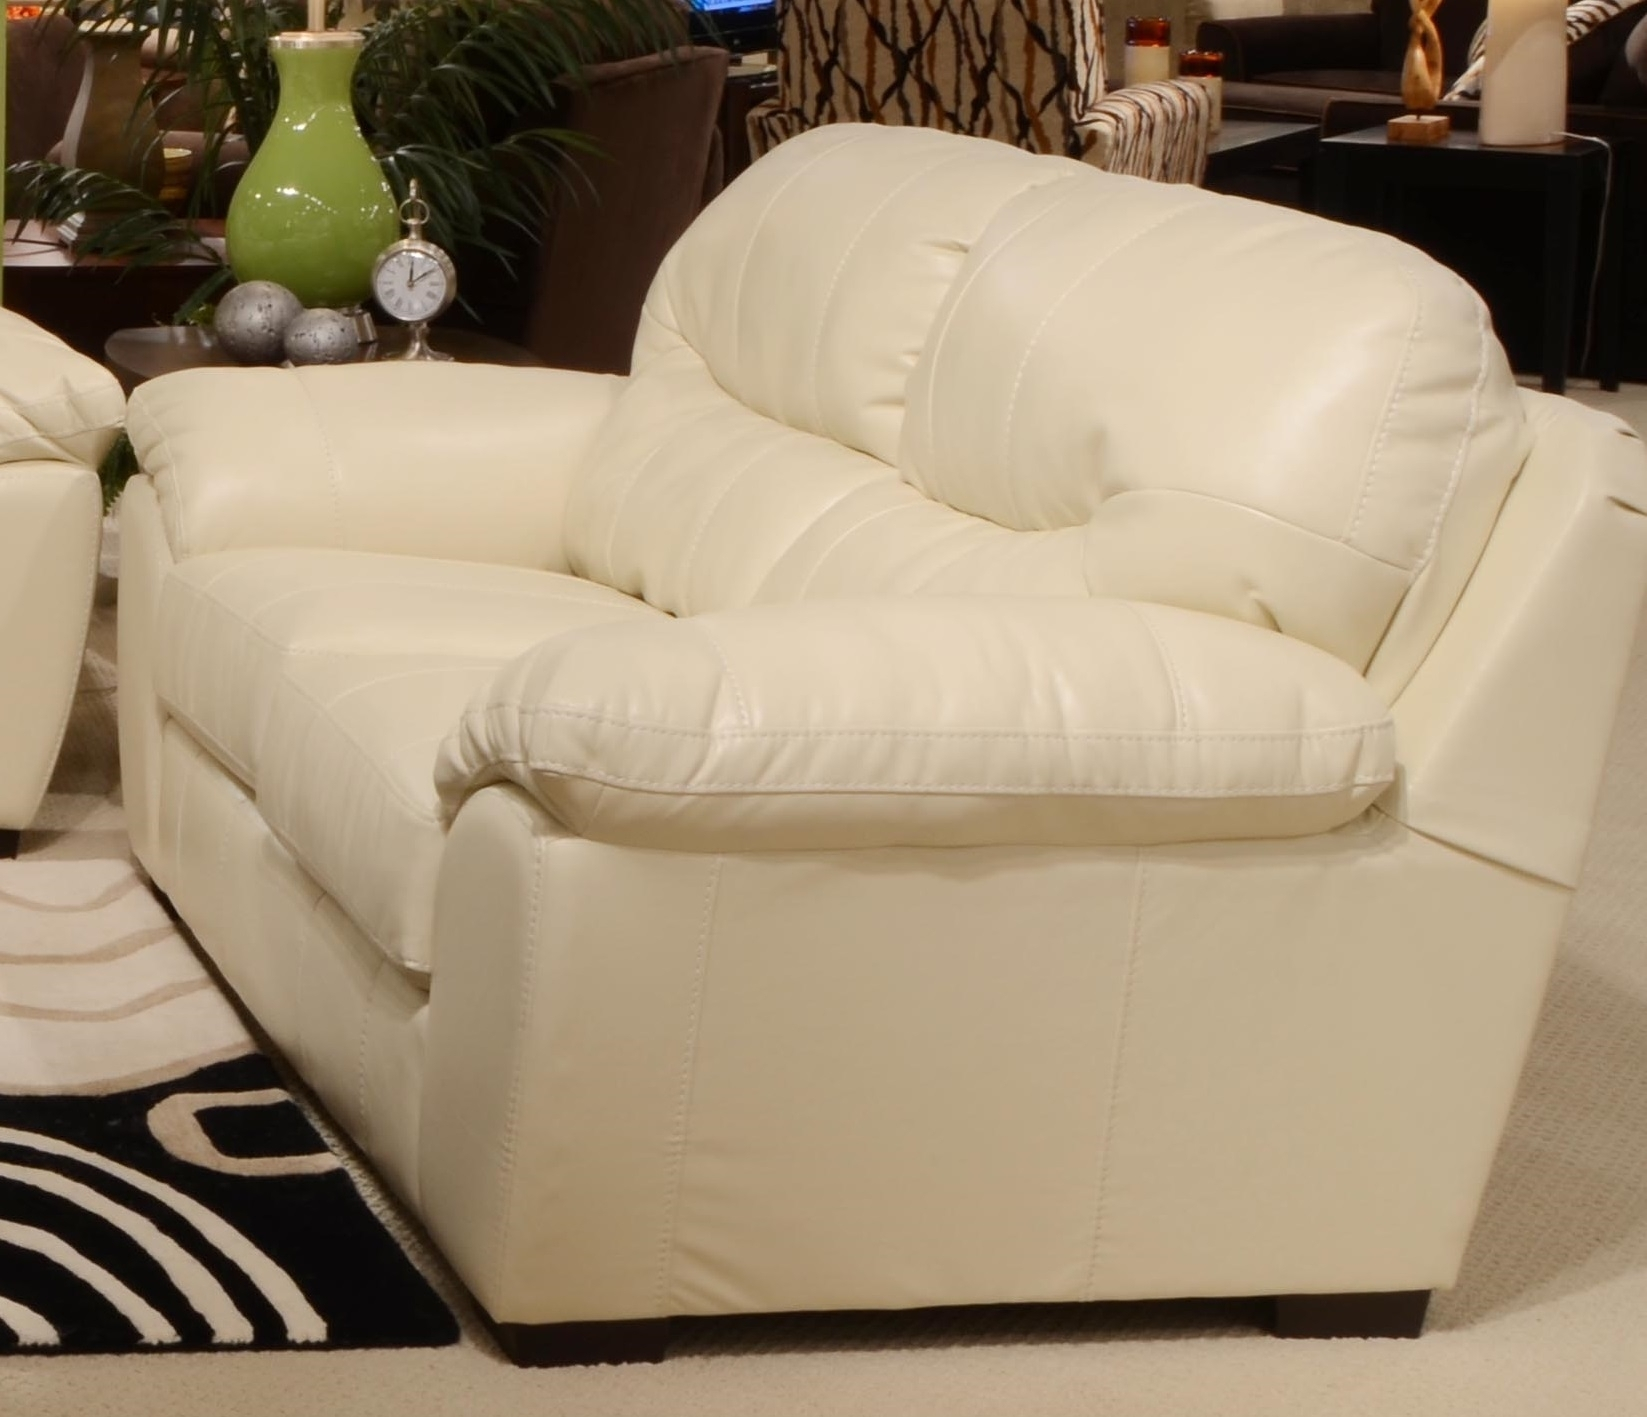 Loveseat : Couch Loveseat Set Sofa And Loveseat Off White Leather Throughout Off White Leather Sofas (View 10 of 10)